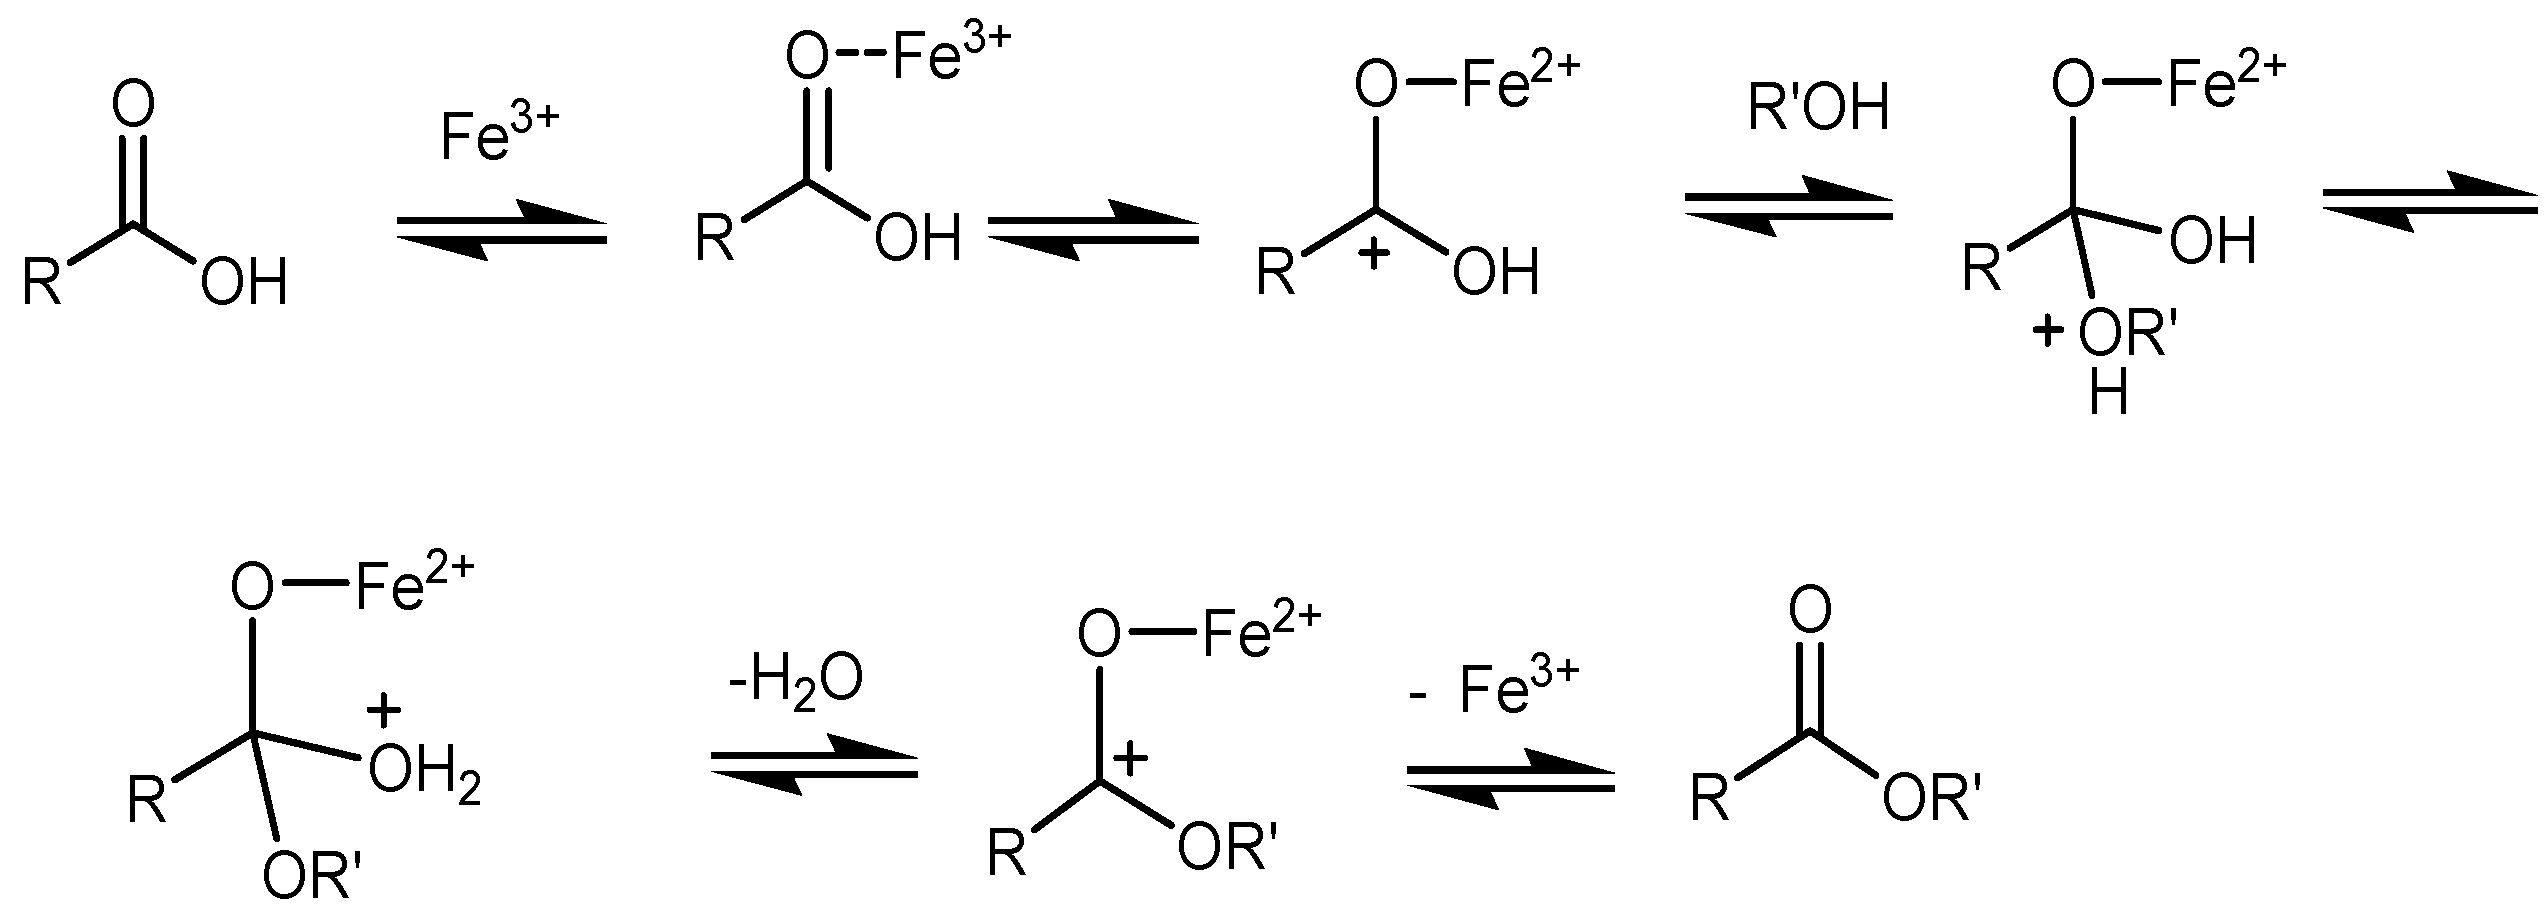 kinetics of de esterification for synthesis of Escola de química to catalytic synthesis were used erlenmeyer in modelling the kinetics of the esterification of fatty acids from tall oil an autocatalytic.